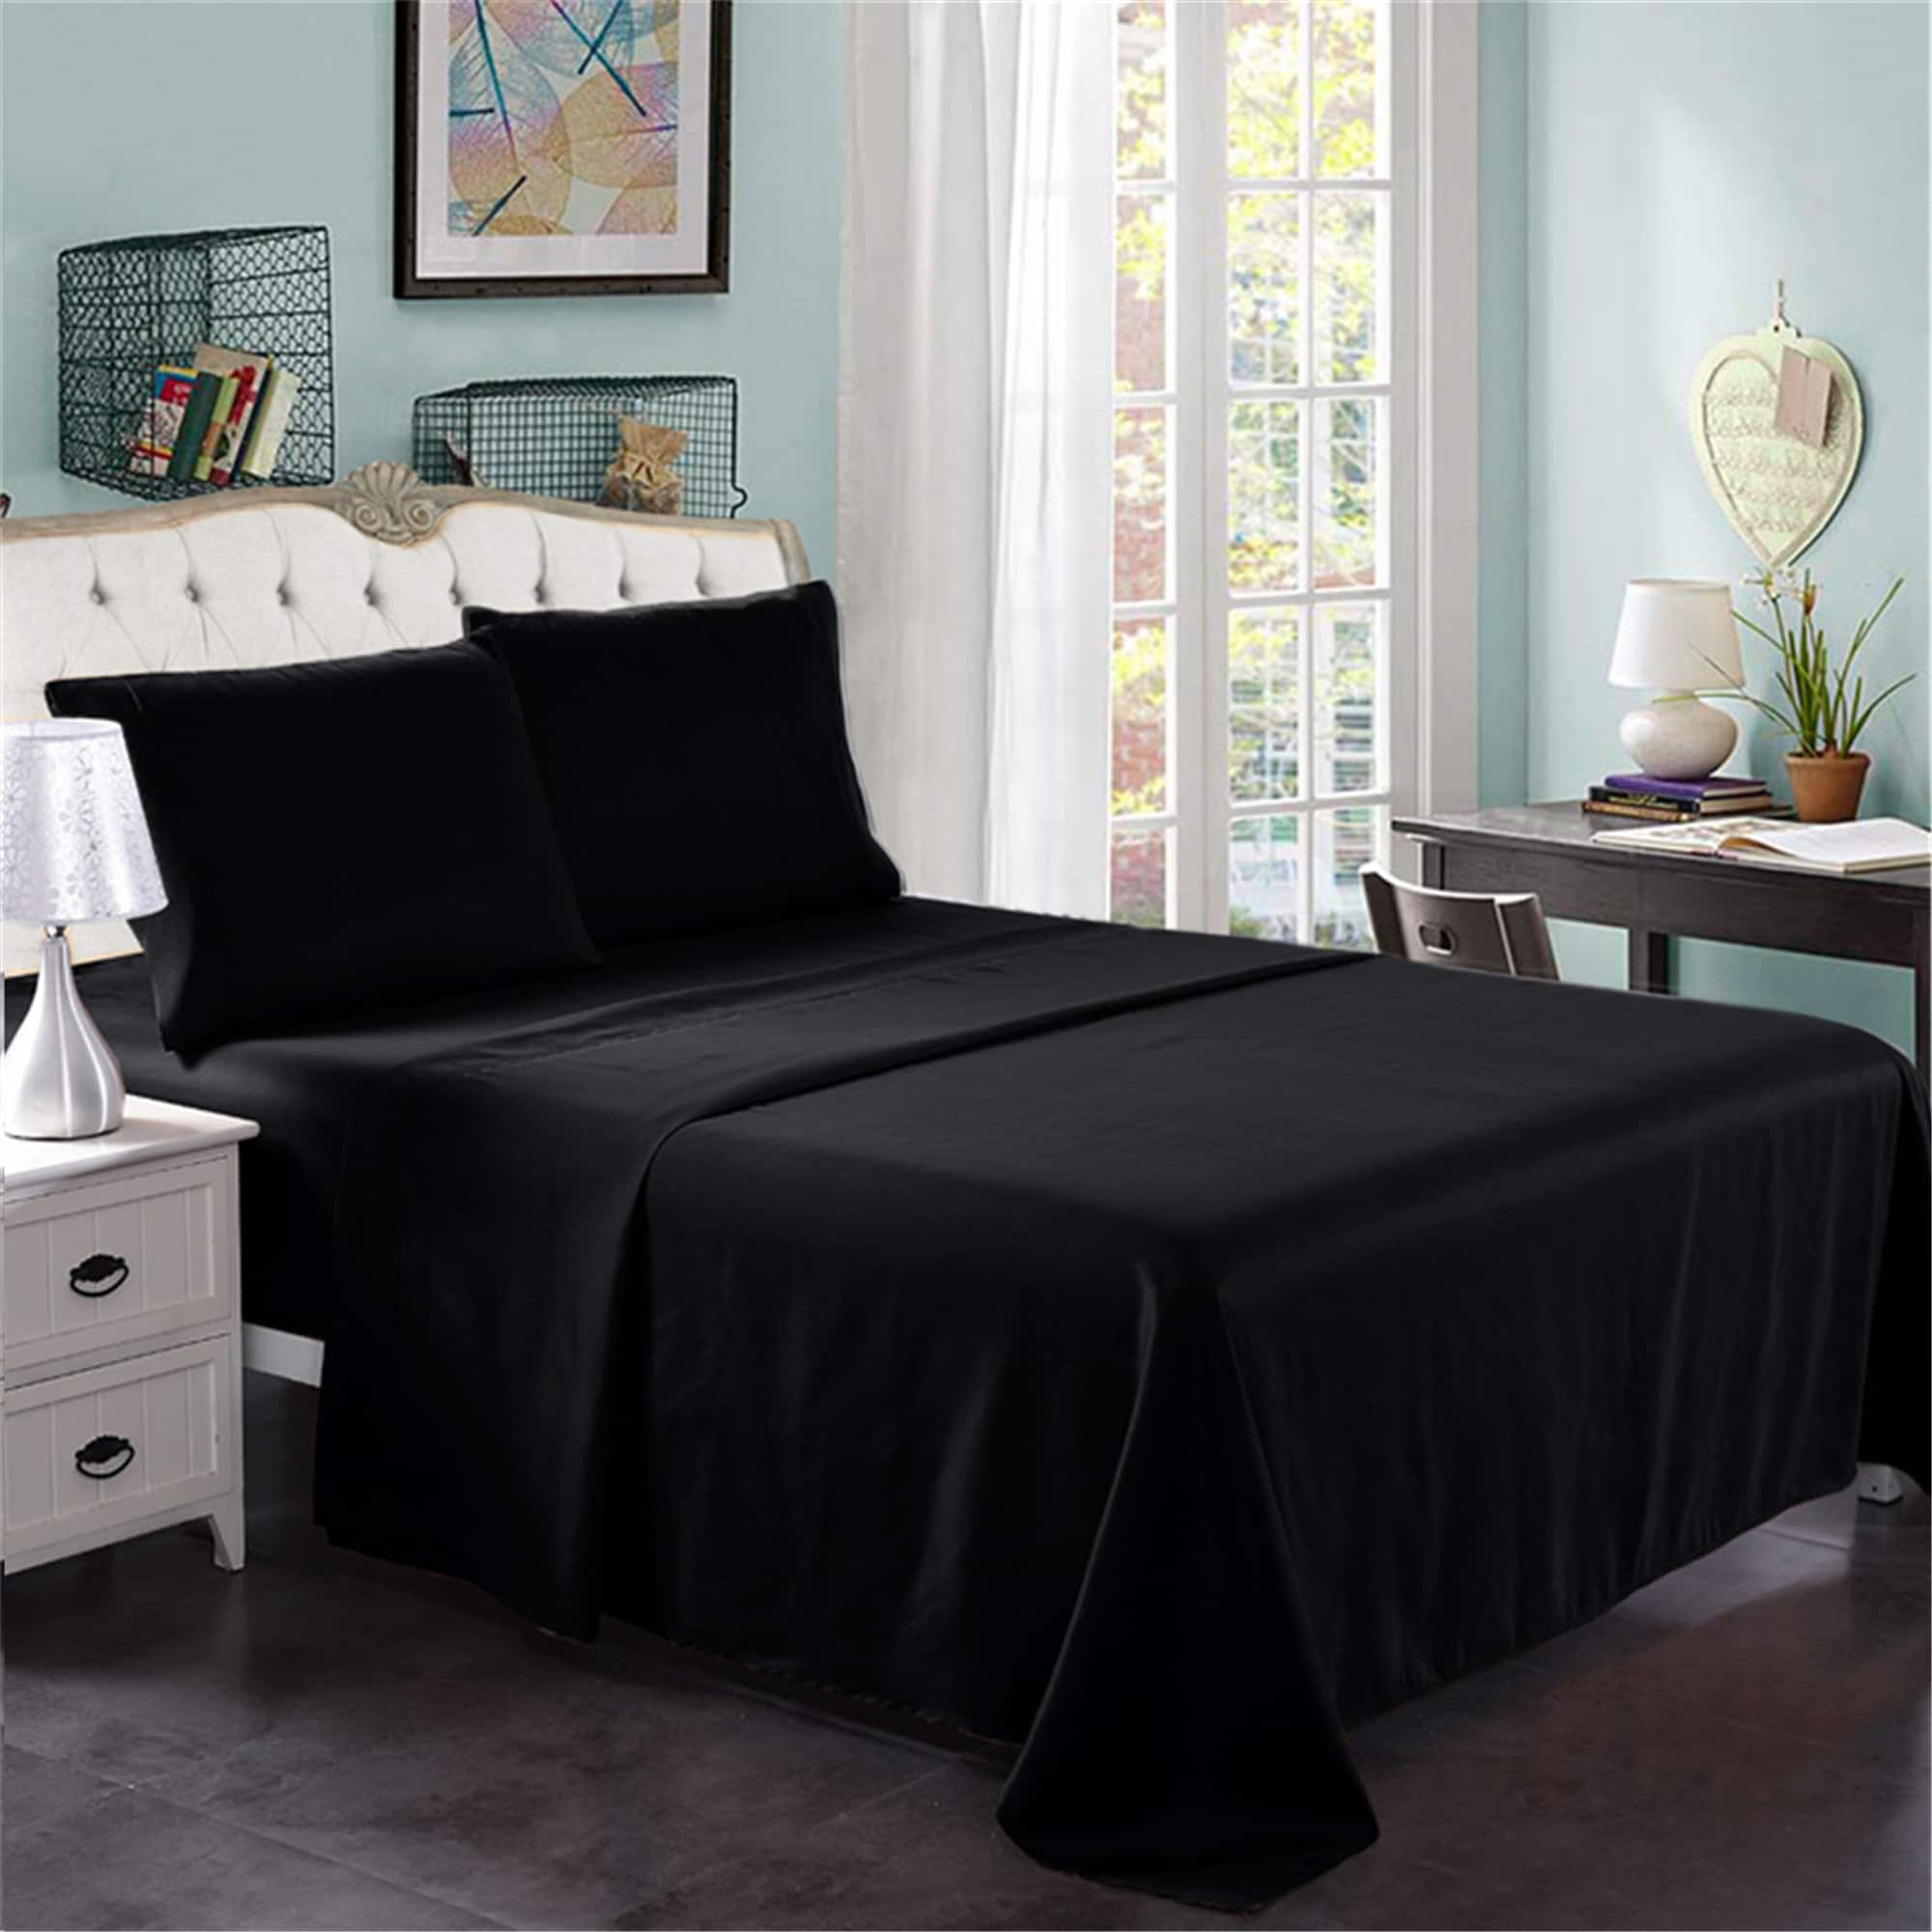 Extra Soft Wrinkle Resistant Hotel Luxury Bed Sheets (4 Piece set Queen) $16